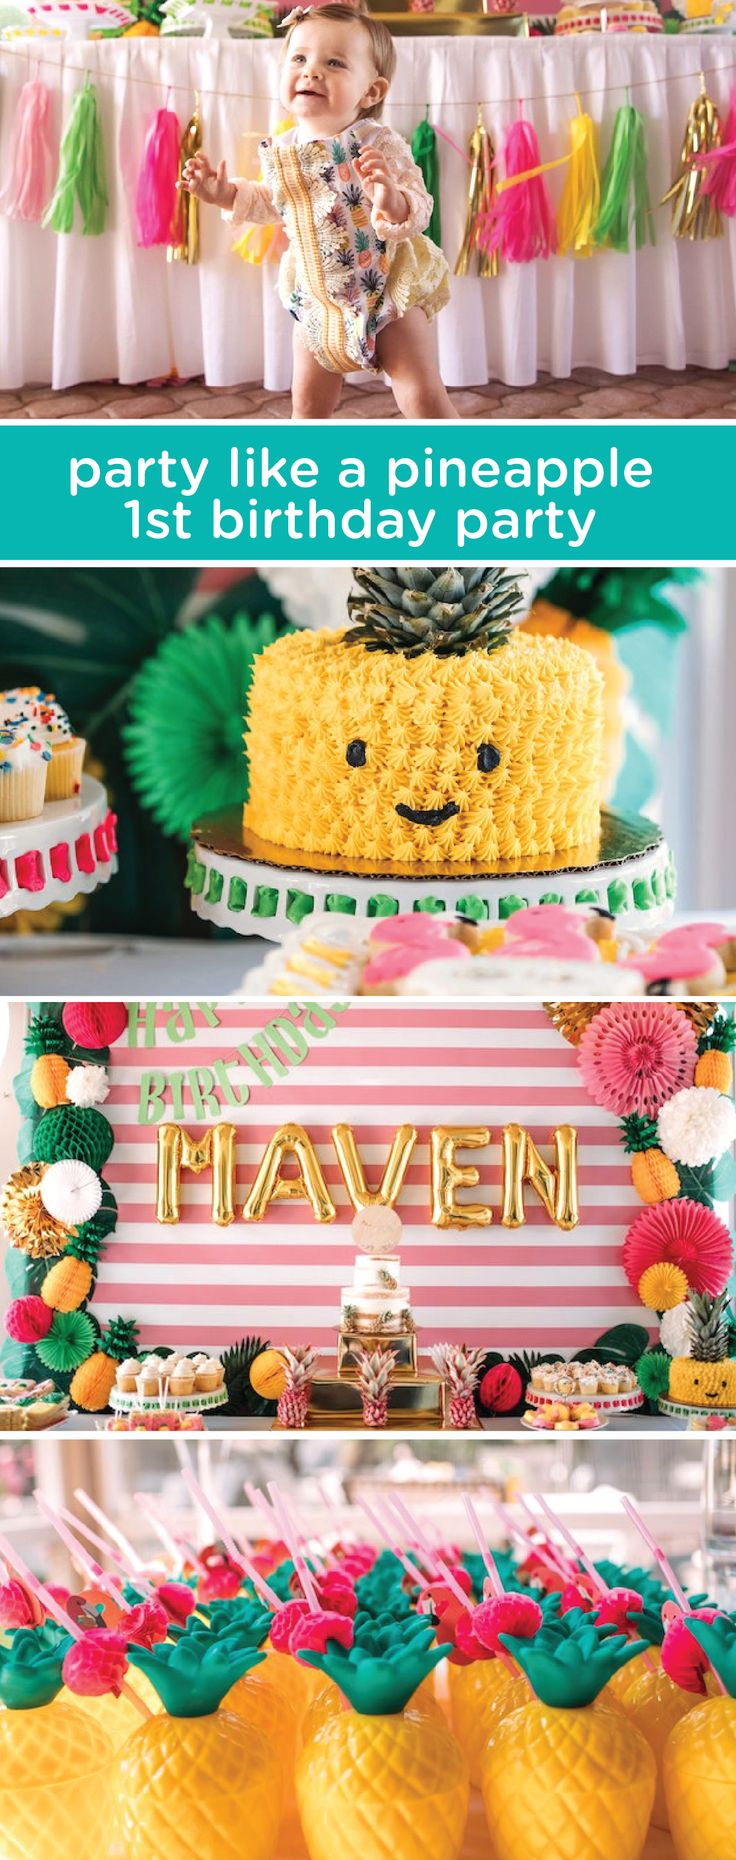 "With your baby's summer birthday right around the corner, it's the ideal time to bring fun, fresh colors and patterns to the party. Check out this ""party like a pineapple"" 1st birthday party theme for inspiration on how to throw a celebration that matches your baby's lively personality."